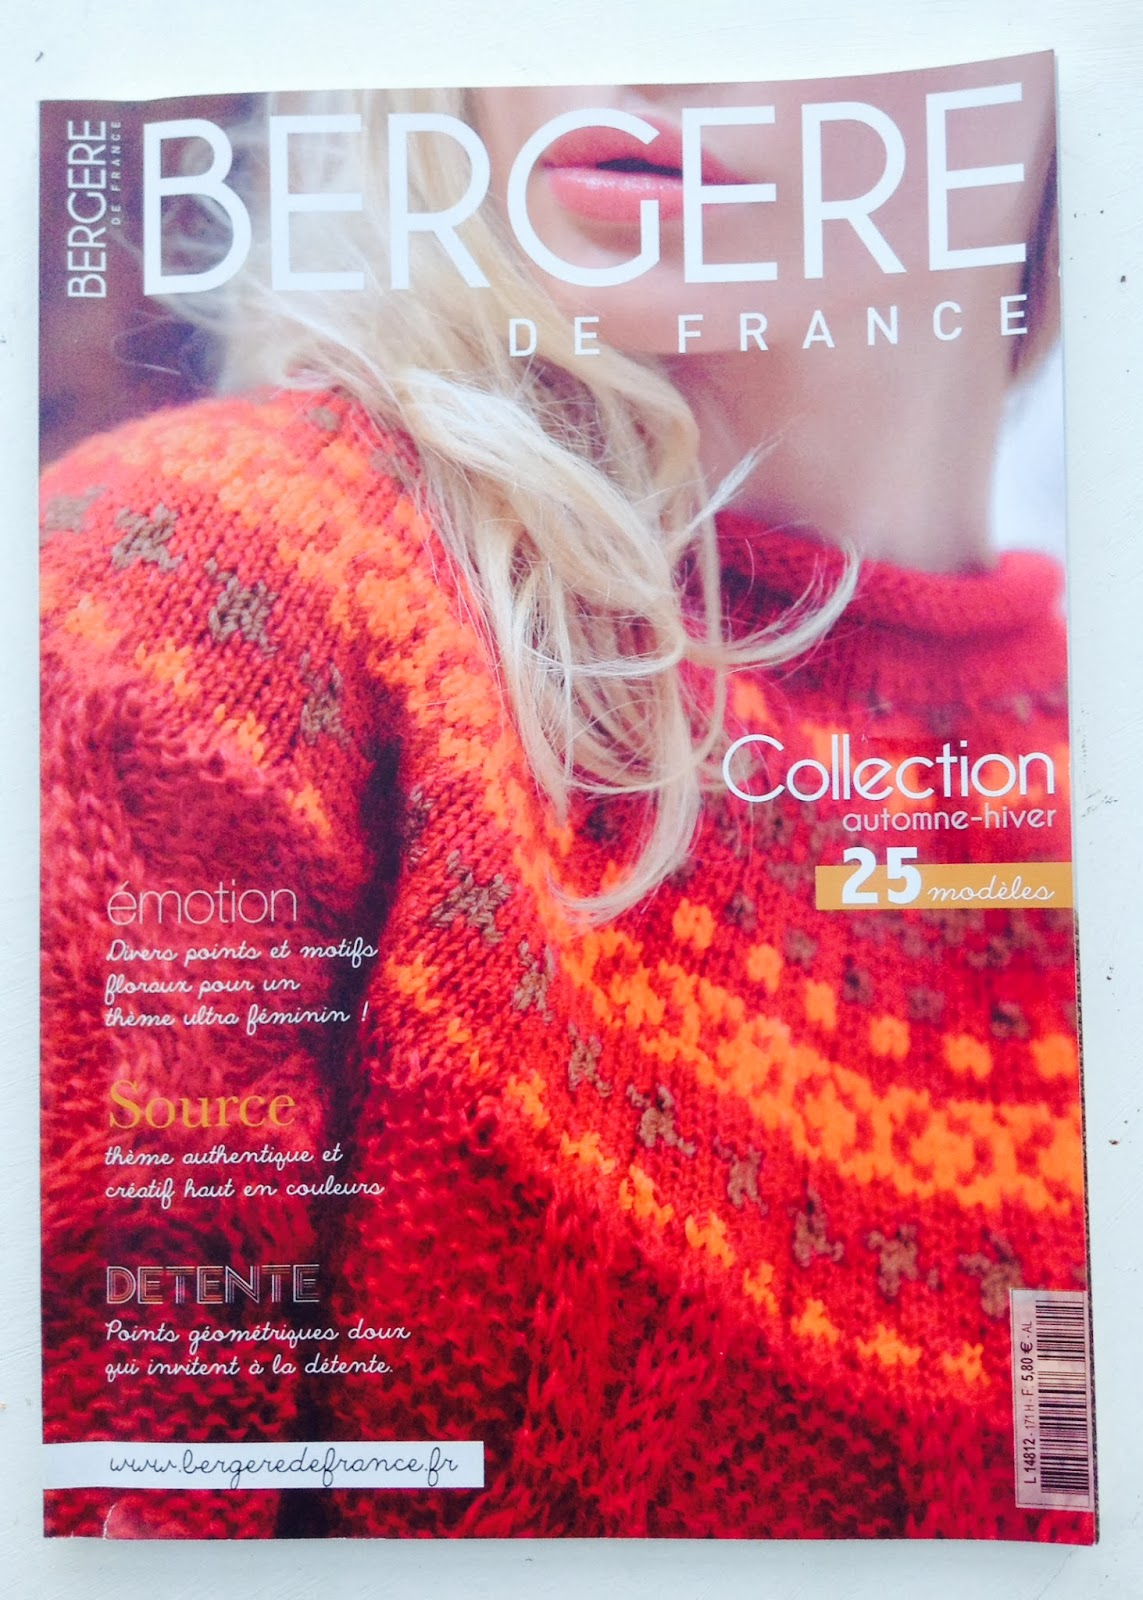 catalogue bergere de france hiver 2013-2014